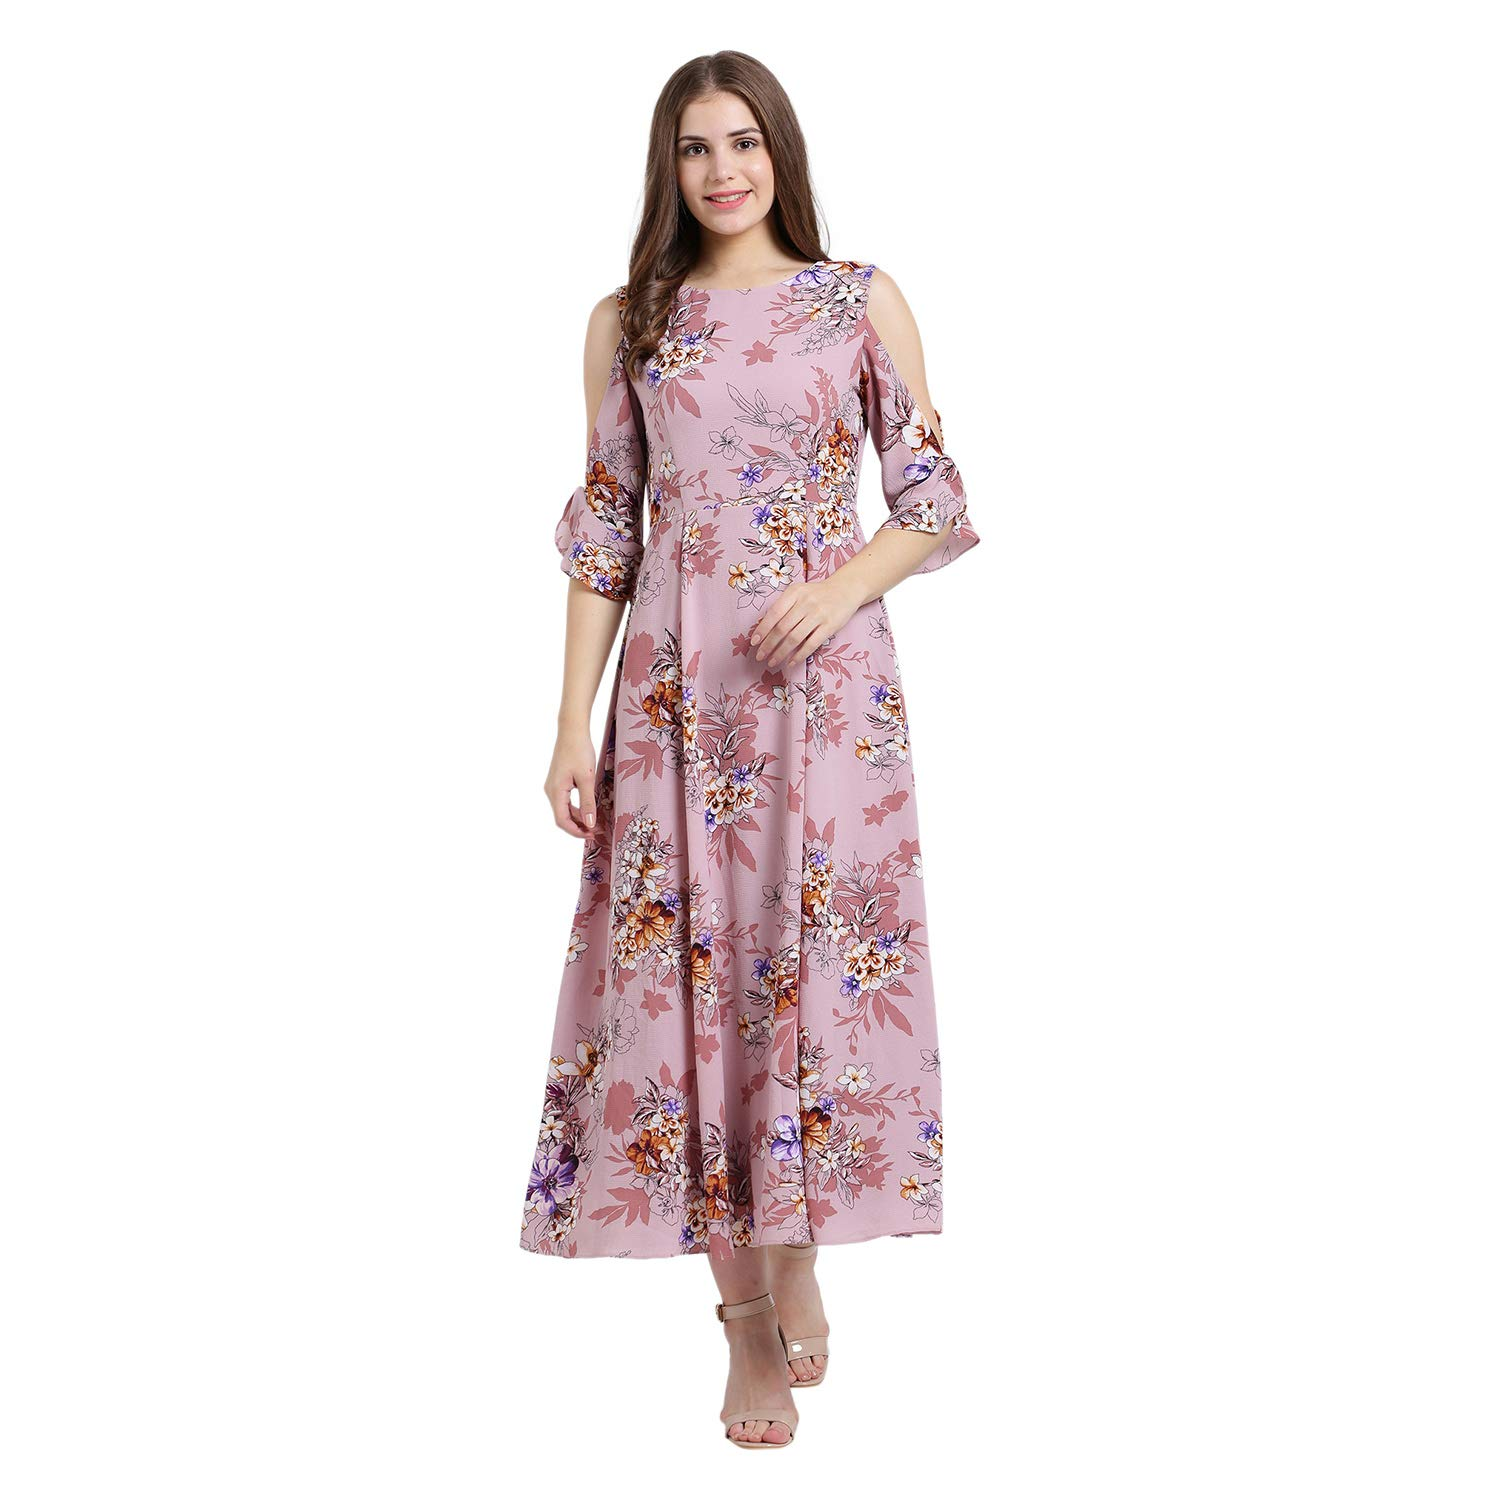 1d59e88f82 Zink London Purple Polyester Floral Print Cold Shoulder Fit   Flare Maxi  Dress for Women  Amazon.in  Clothing   Accessories